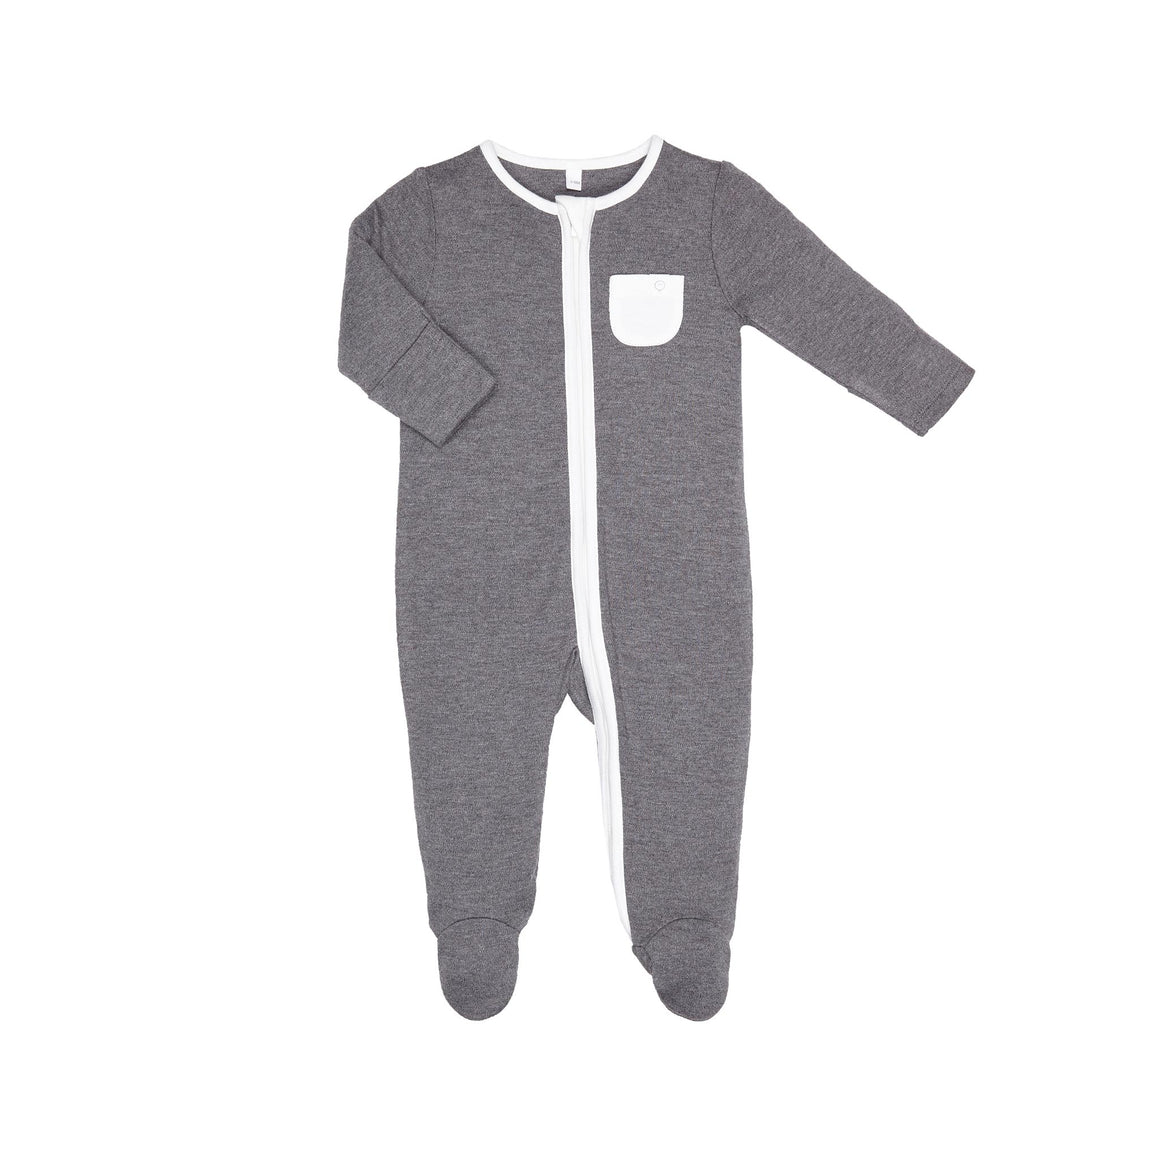 Zip-Up Sleepsuit in Lunar